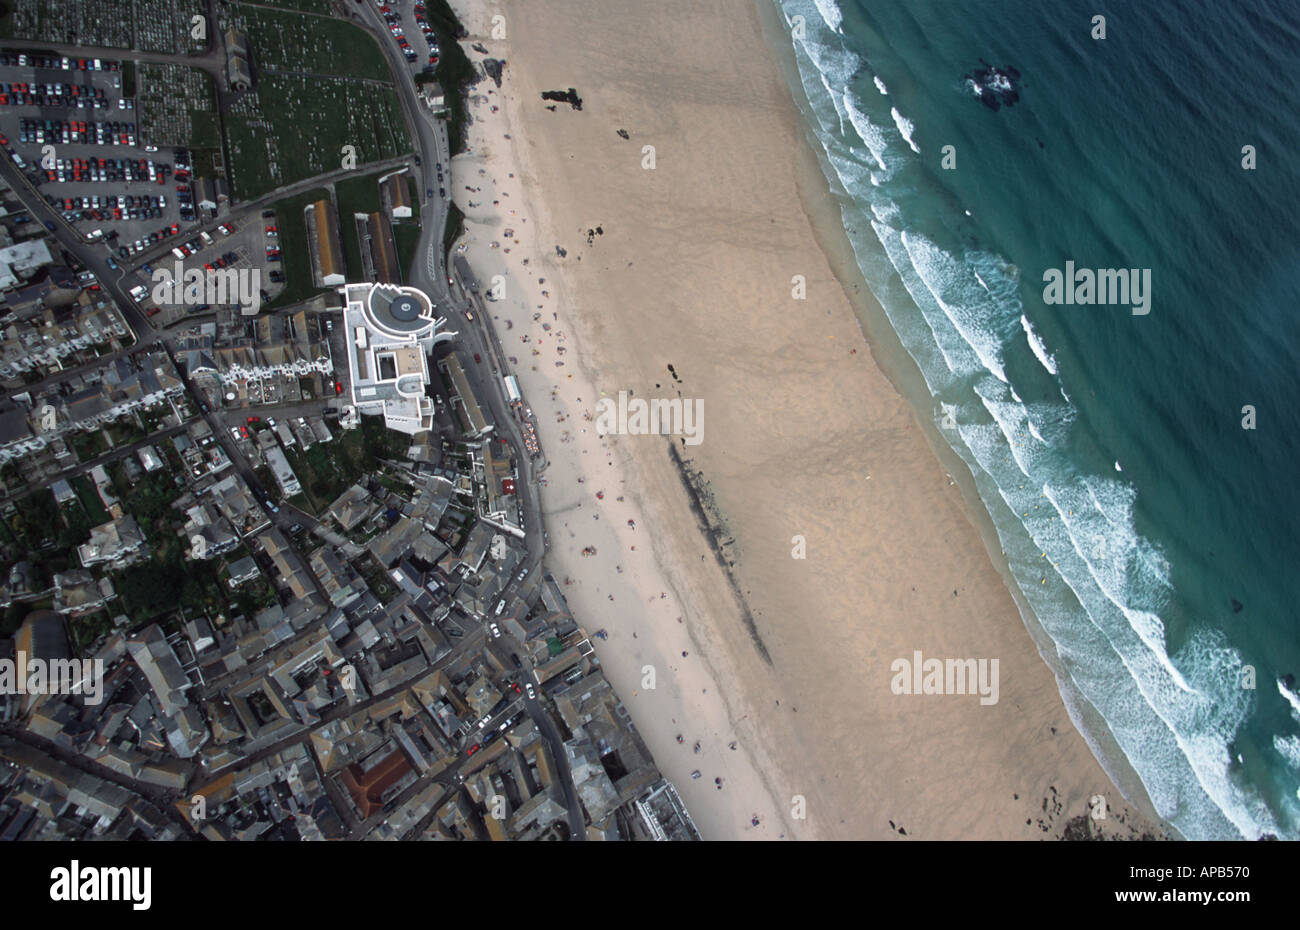 Aerial picture of St Ives, Cornwall showing Tate St Ives - Stock Image